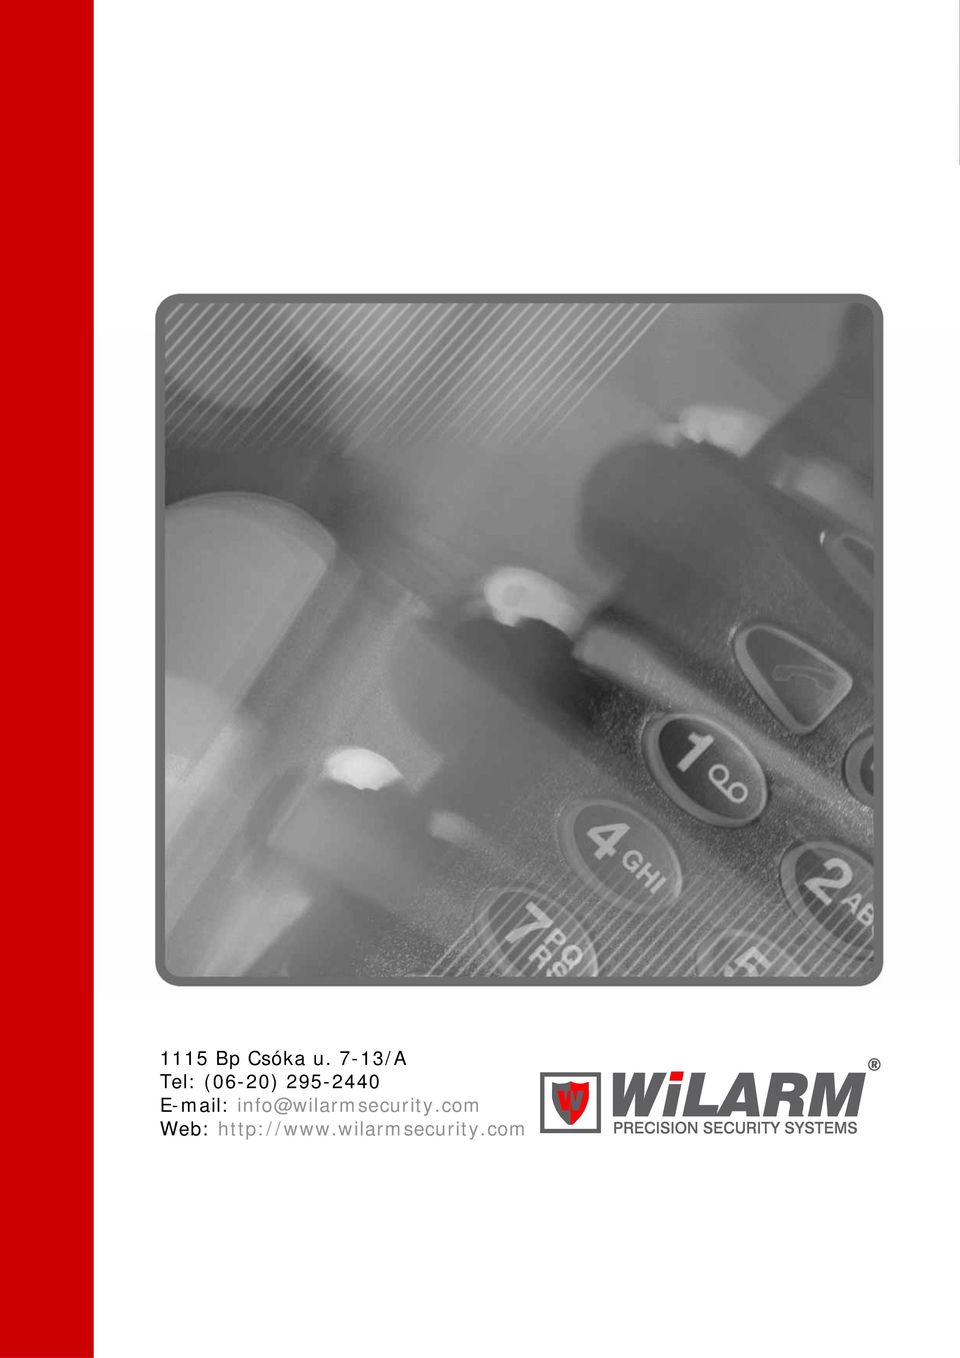 E-mail: info@wilarmsecurity.